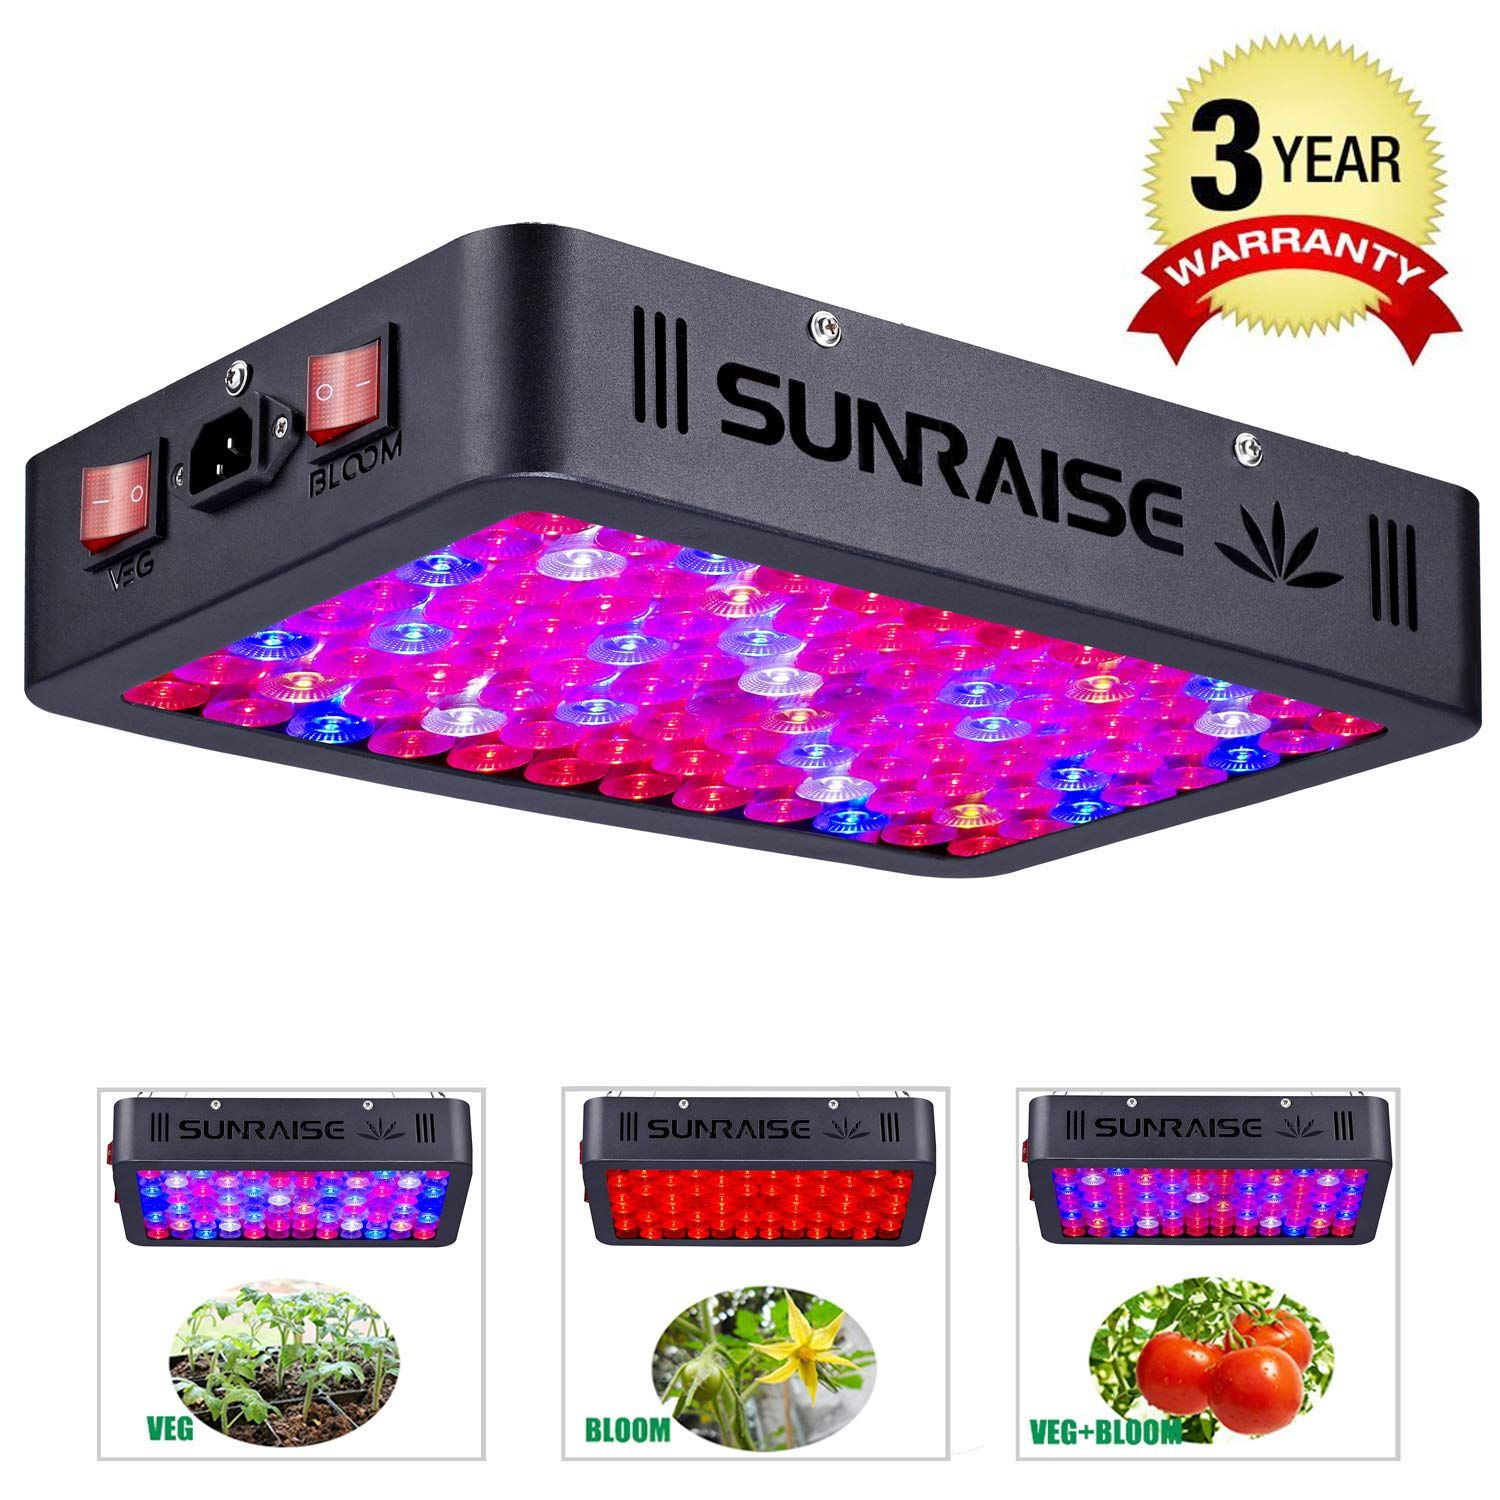 Yehsence 1500w Led Grow Light With Bloom And Veg Switch 15w Led Triple Chips